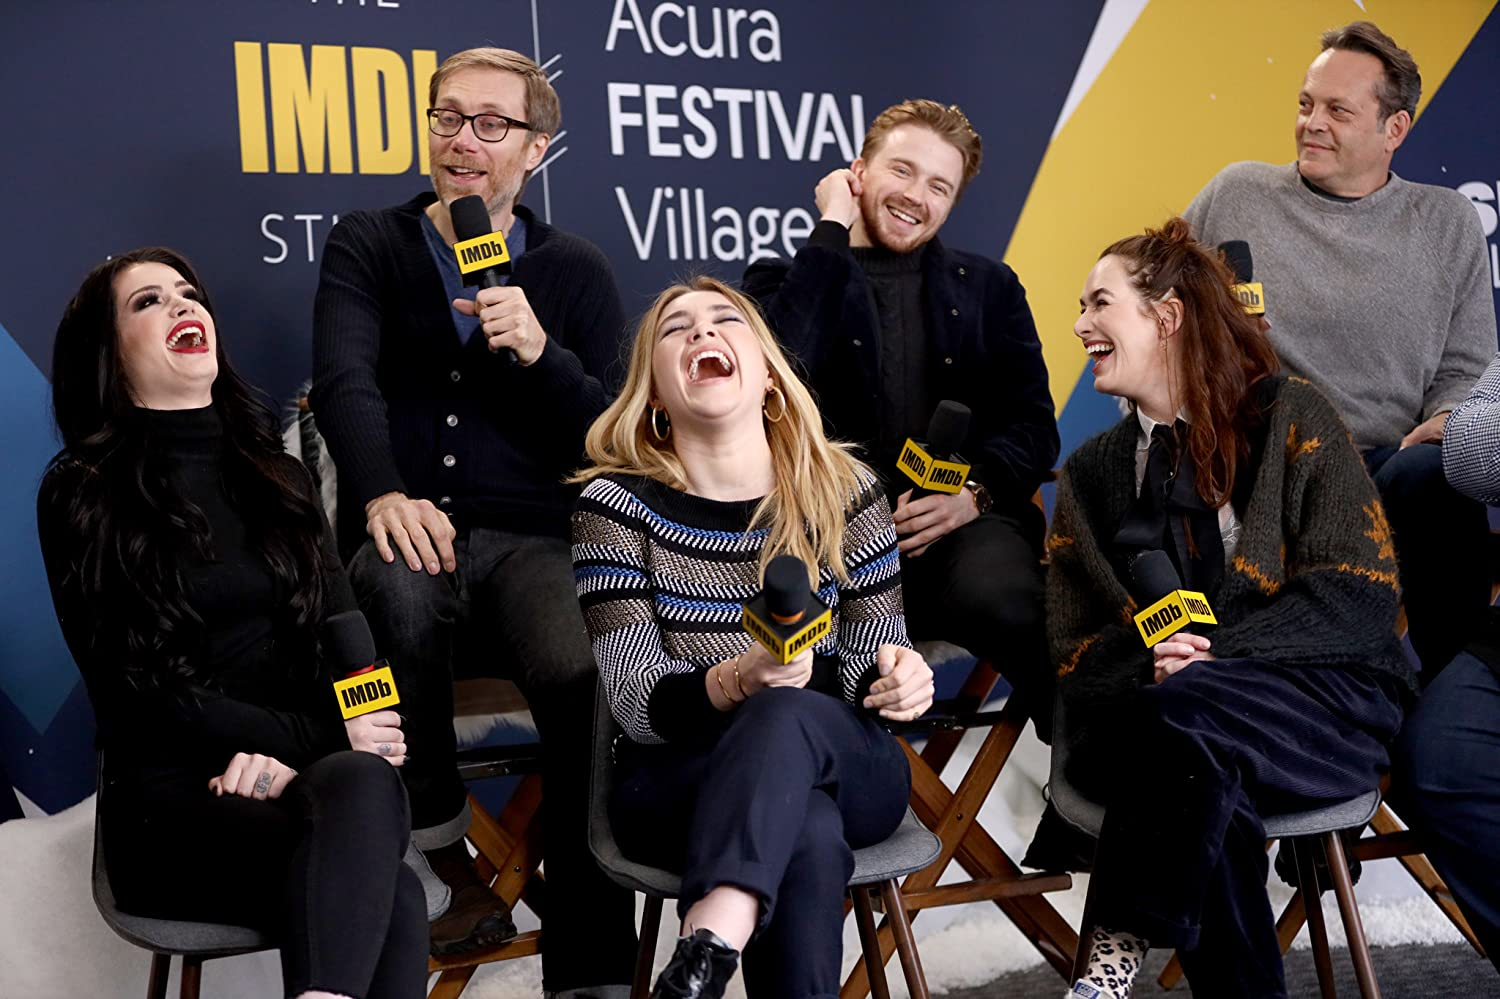 Vince Vaughn, Kevin Smith, Lena Headey, Stephen Merchant, Jack Lowden, and Florence Pugh